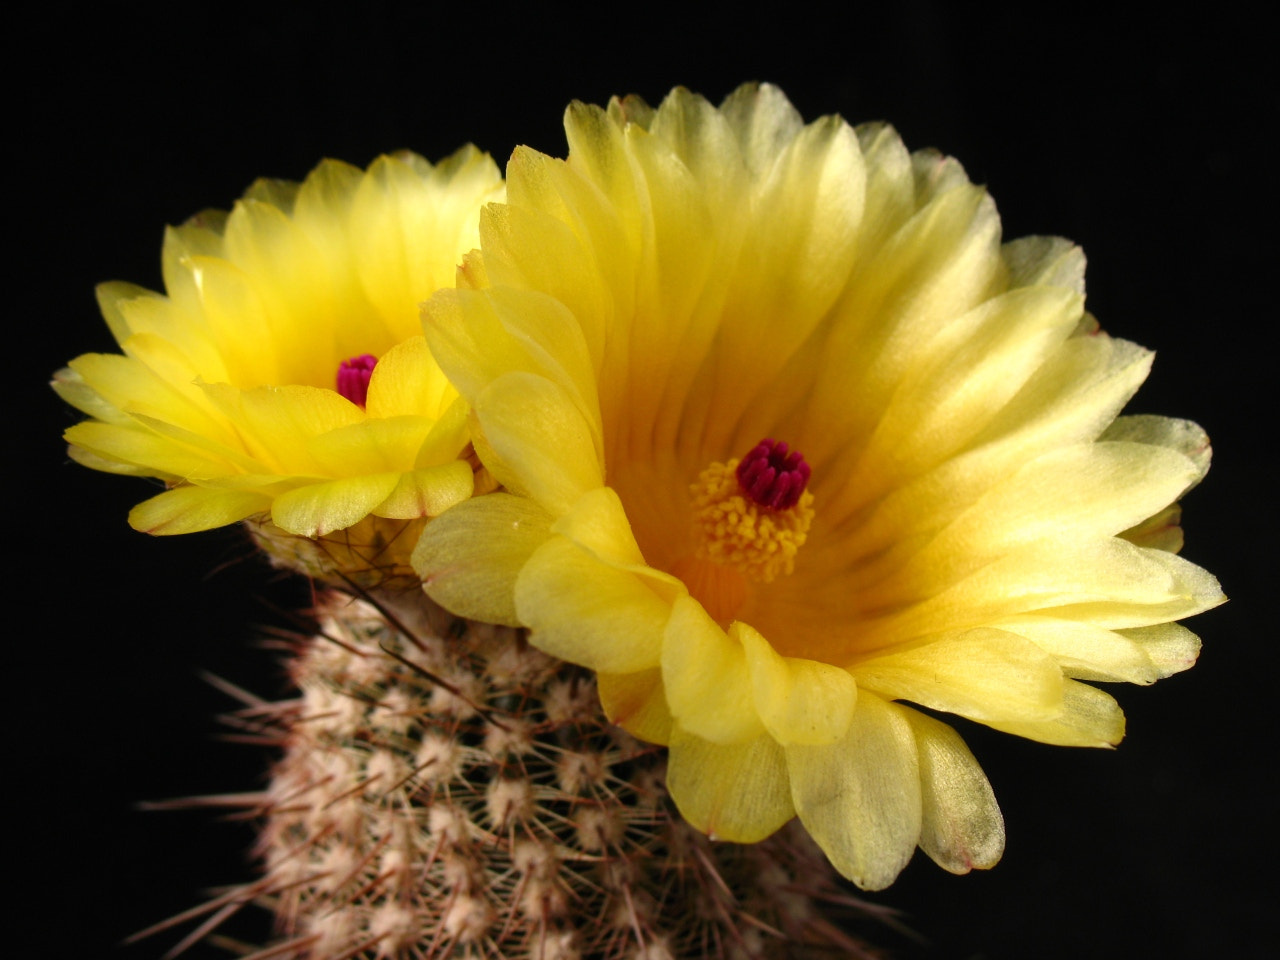 Photograph Natocactus flower by ali kangal on 500px